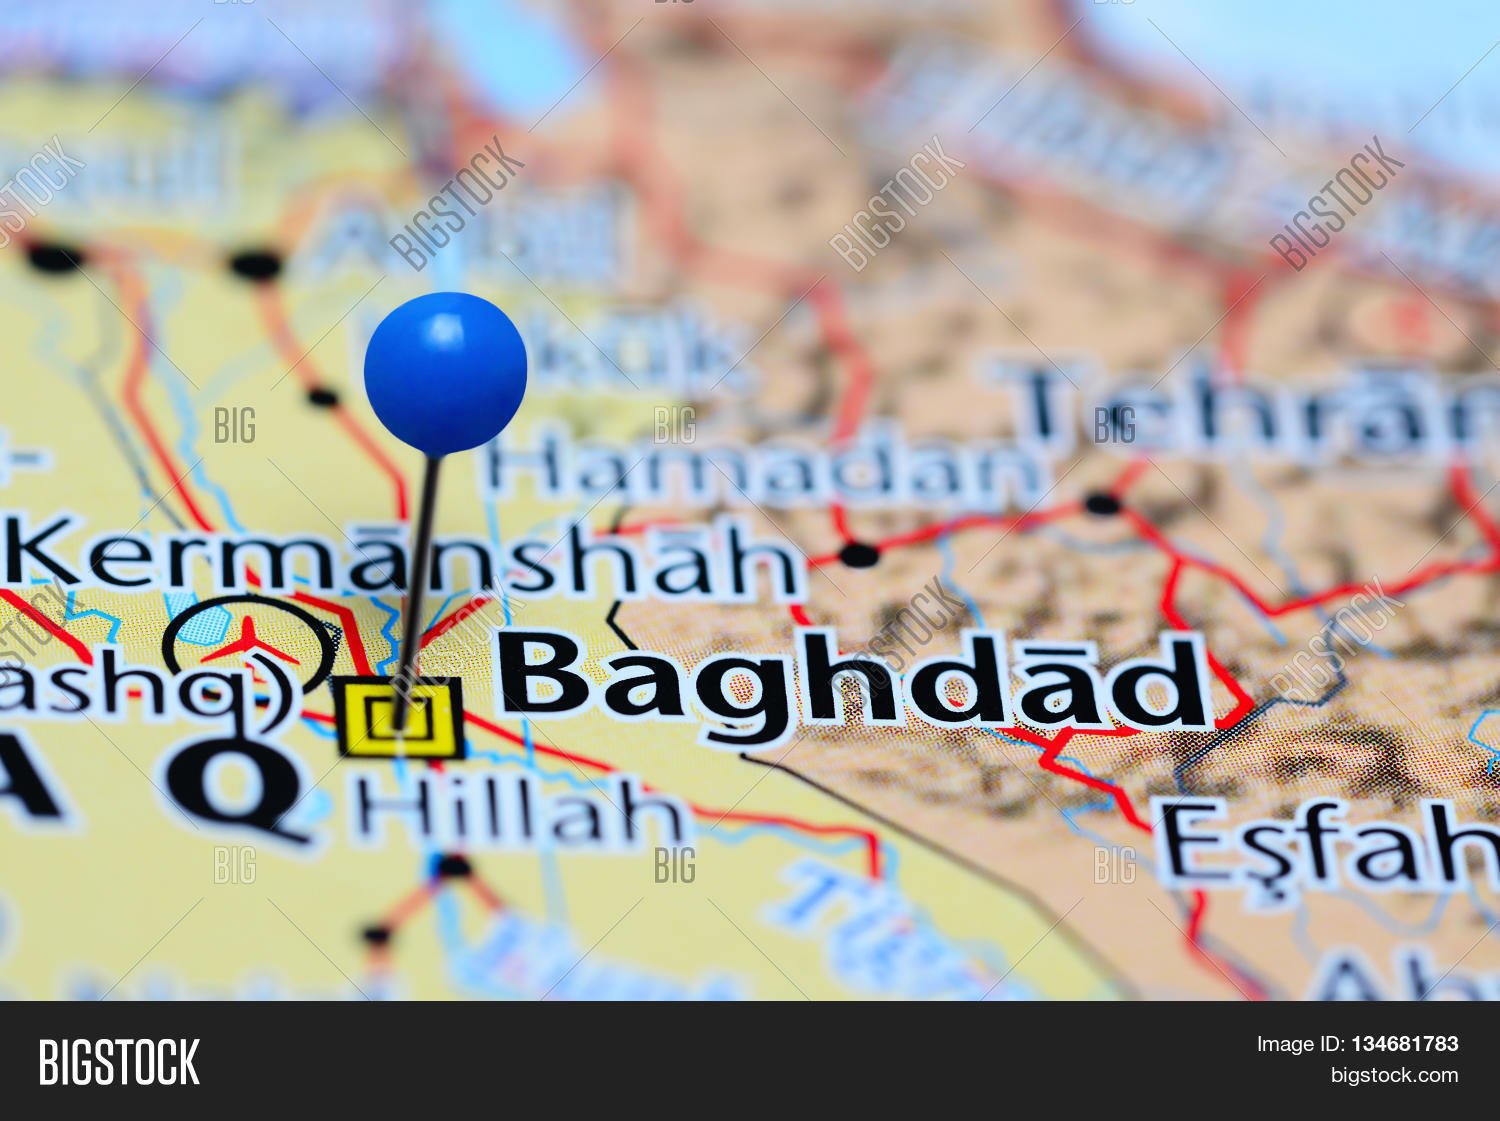 Baghdad Pinned On Map Image & Photo (Free Trial) | Bigstock